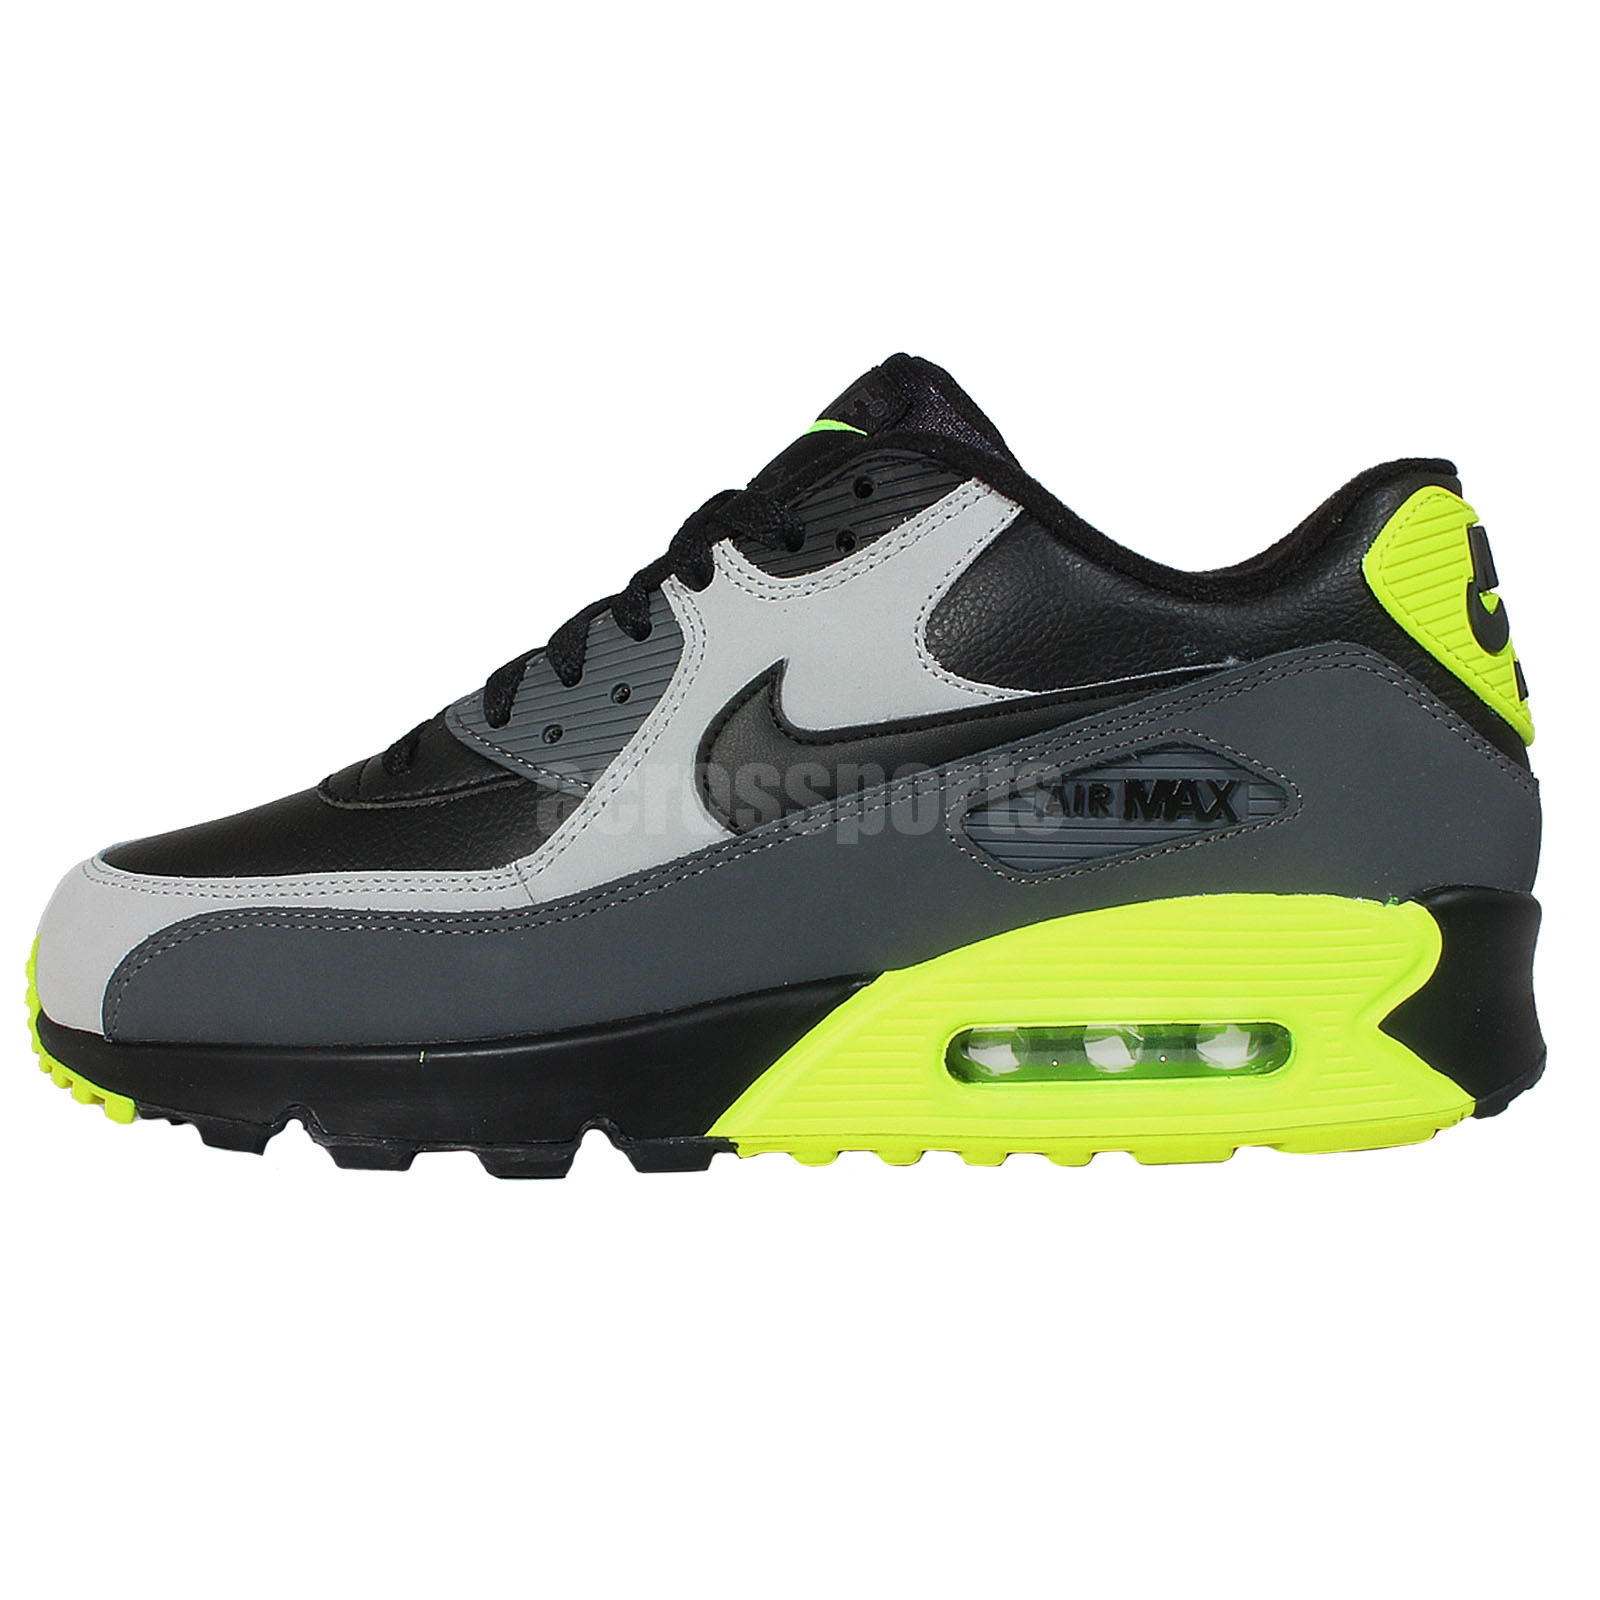 Nike Air Max 90 LTR Leather Black Grey Volt Mens Running